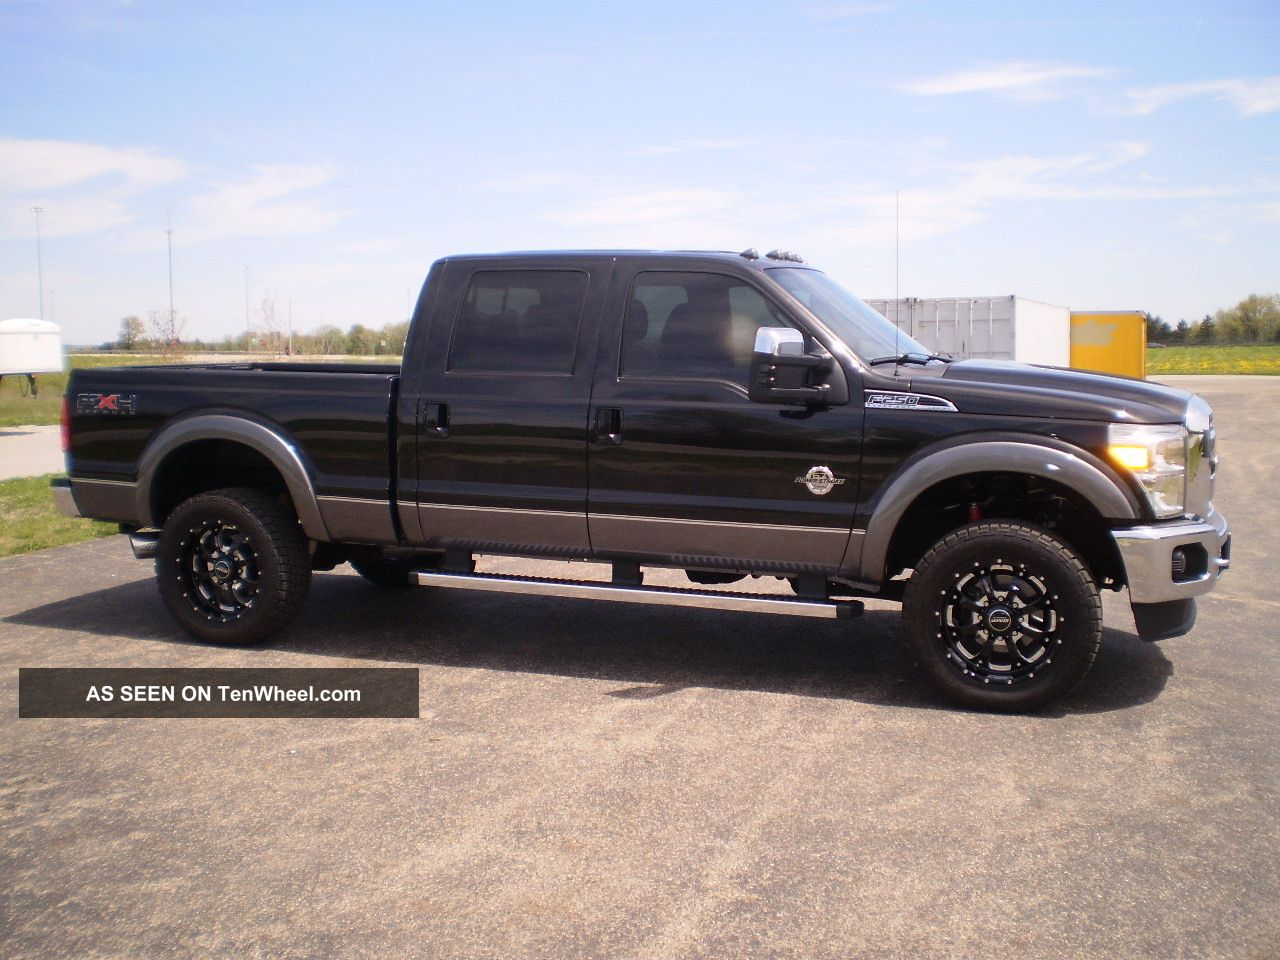 2011 ford f250 lariat 4x4 crew cab 6 7 power stroke diesel many extras look. Black Bedroom Furniture Sets. Home Design Ideas